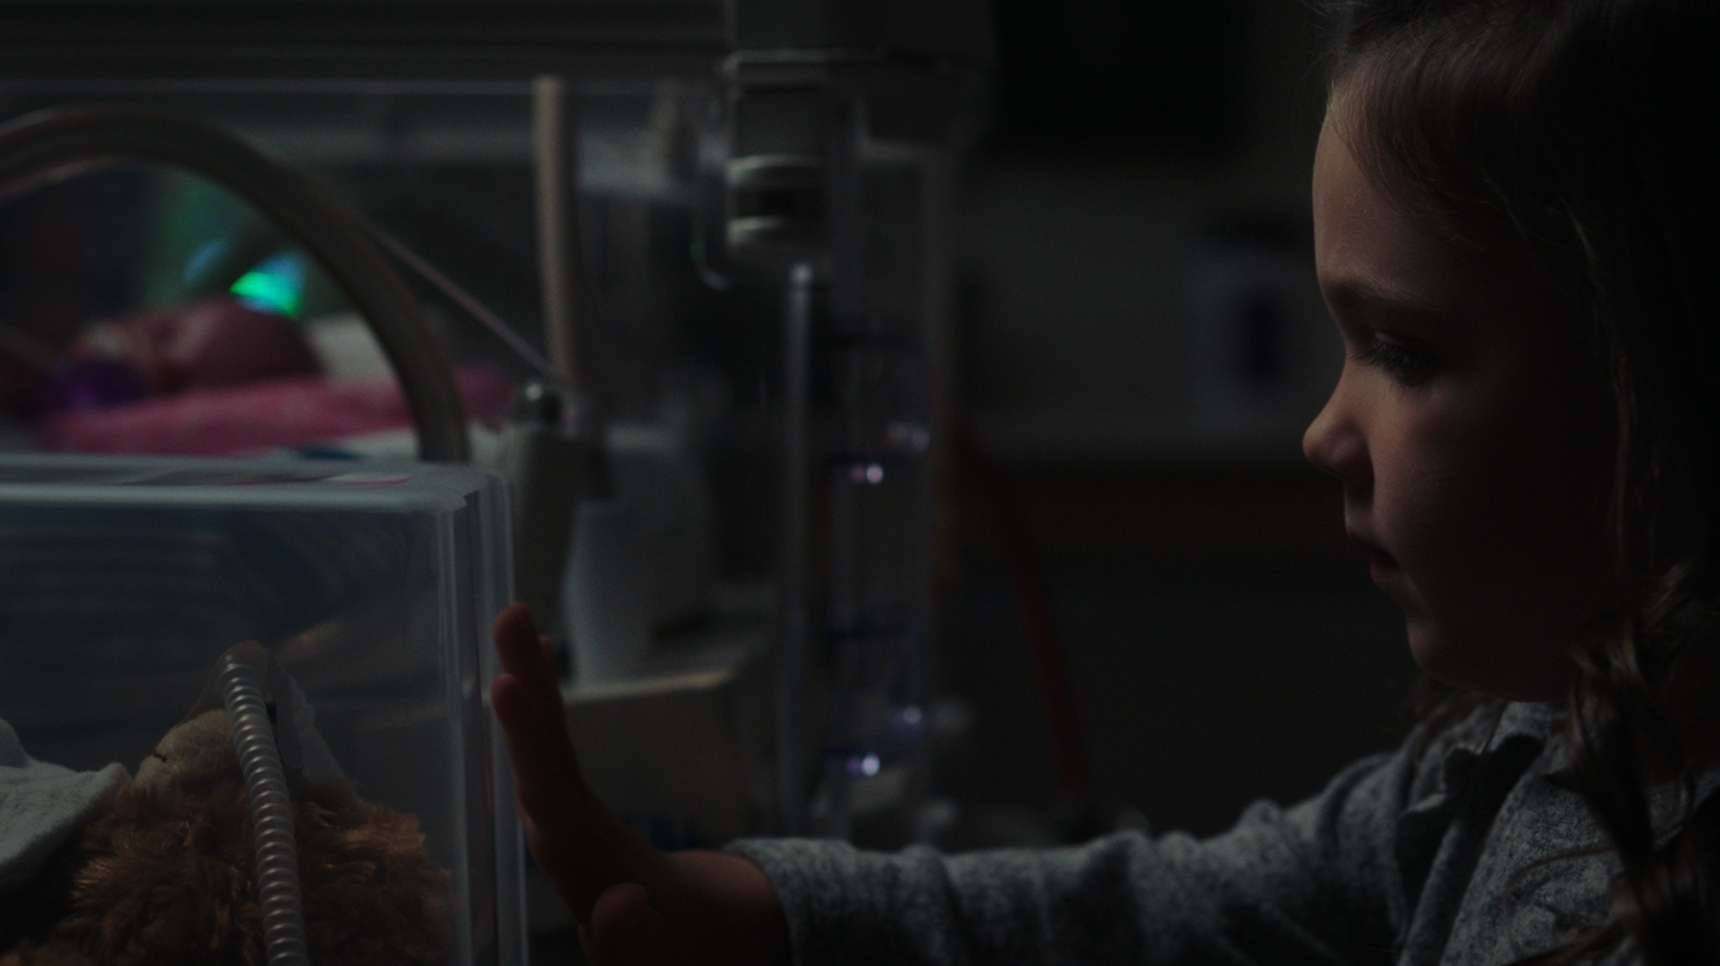 little girl looks into incubator where her preemie brother lies